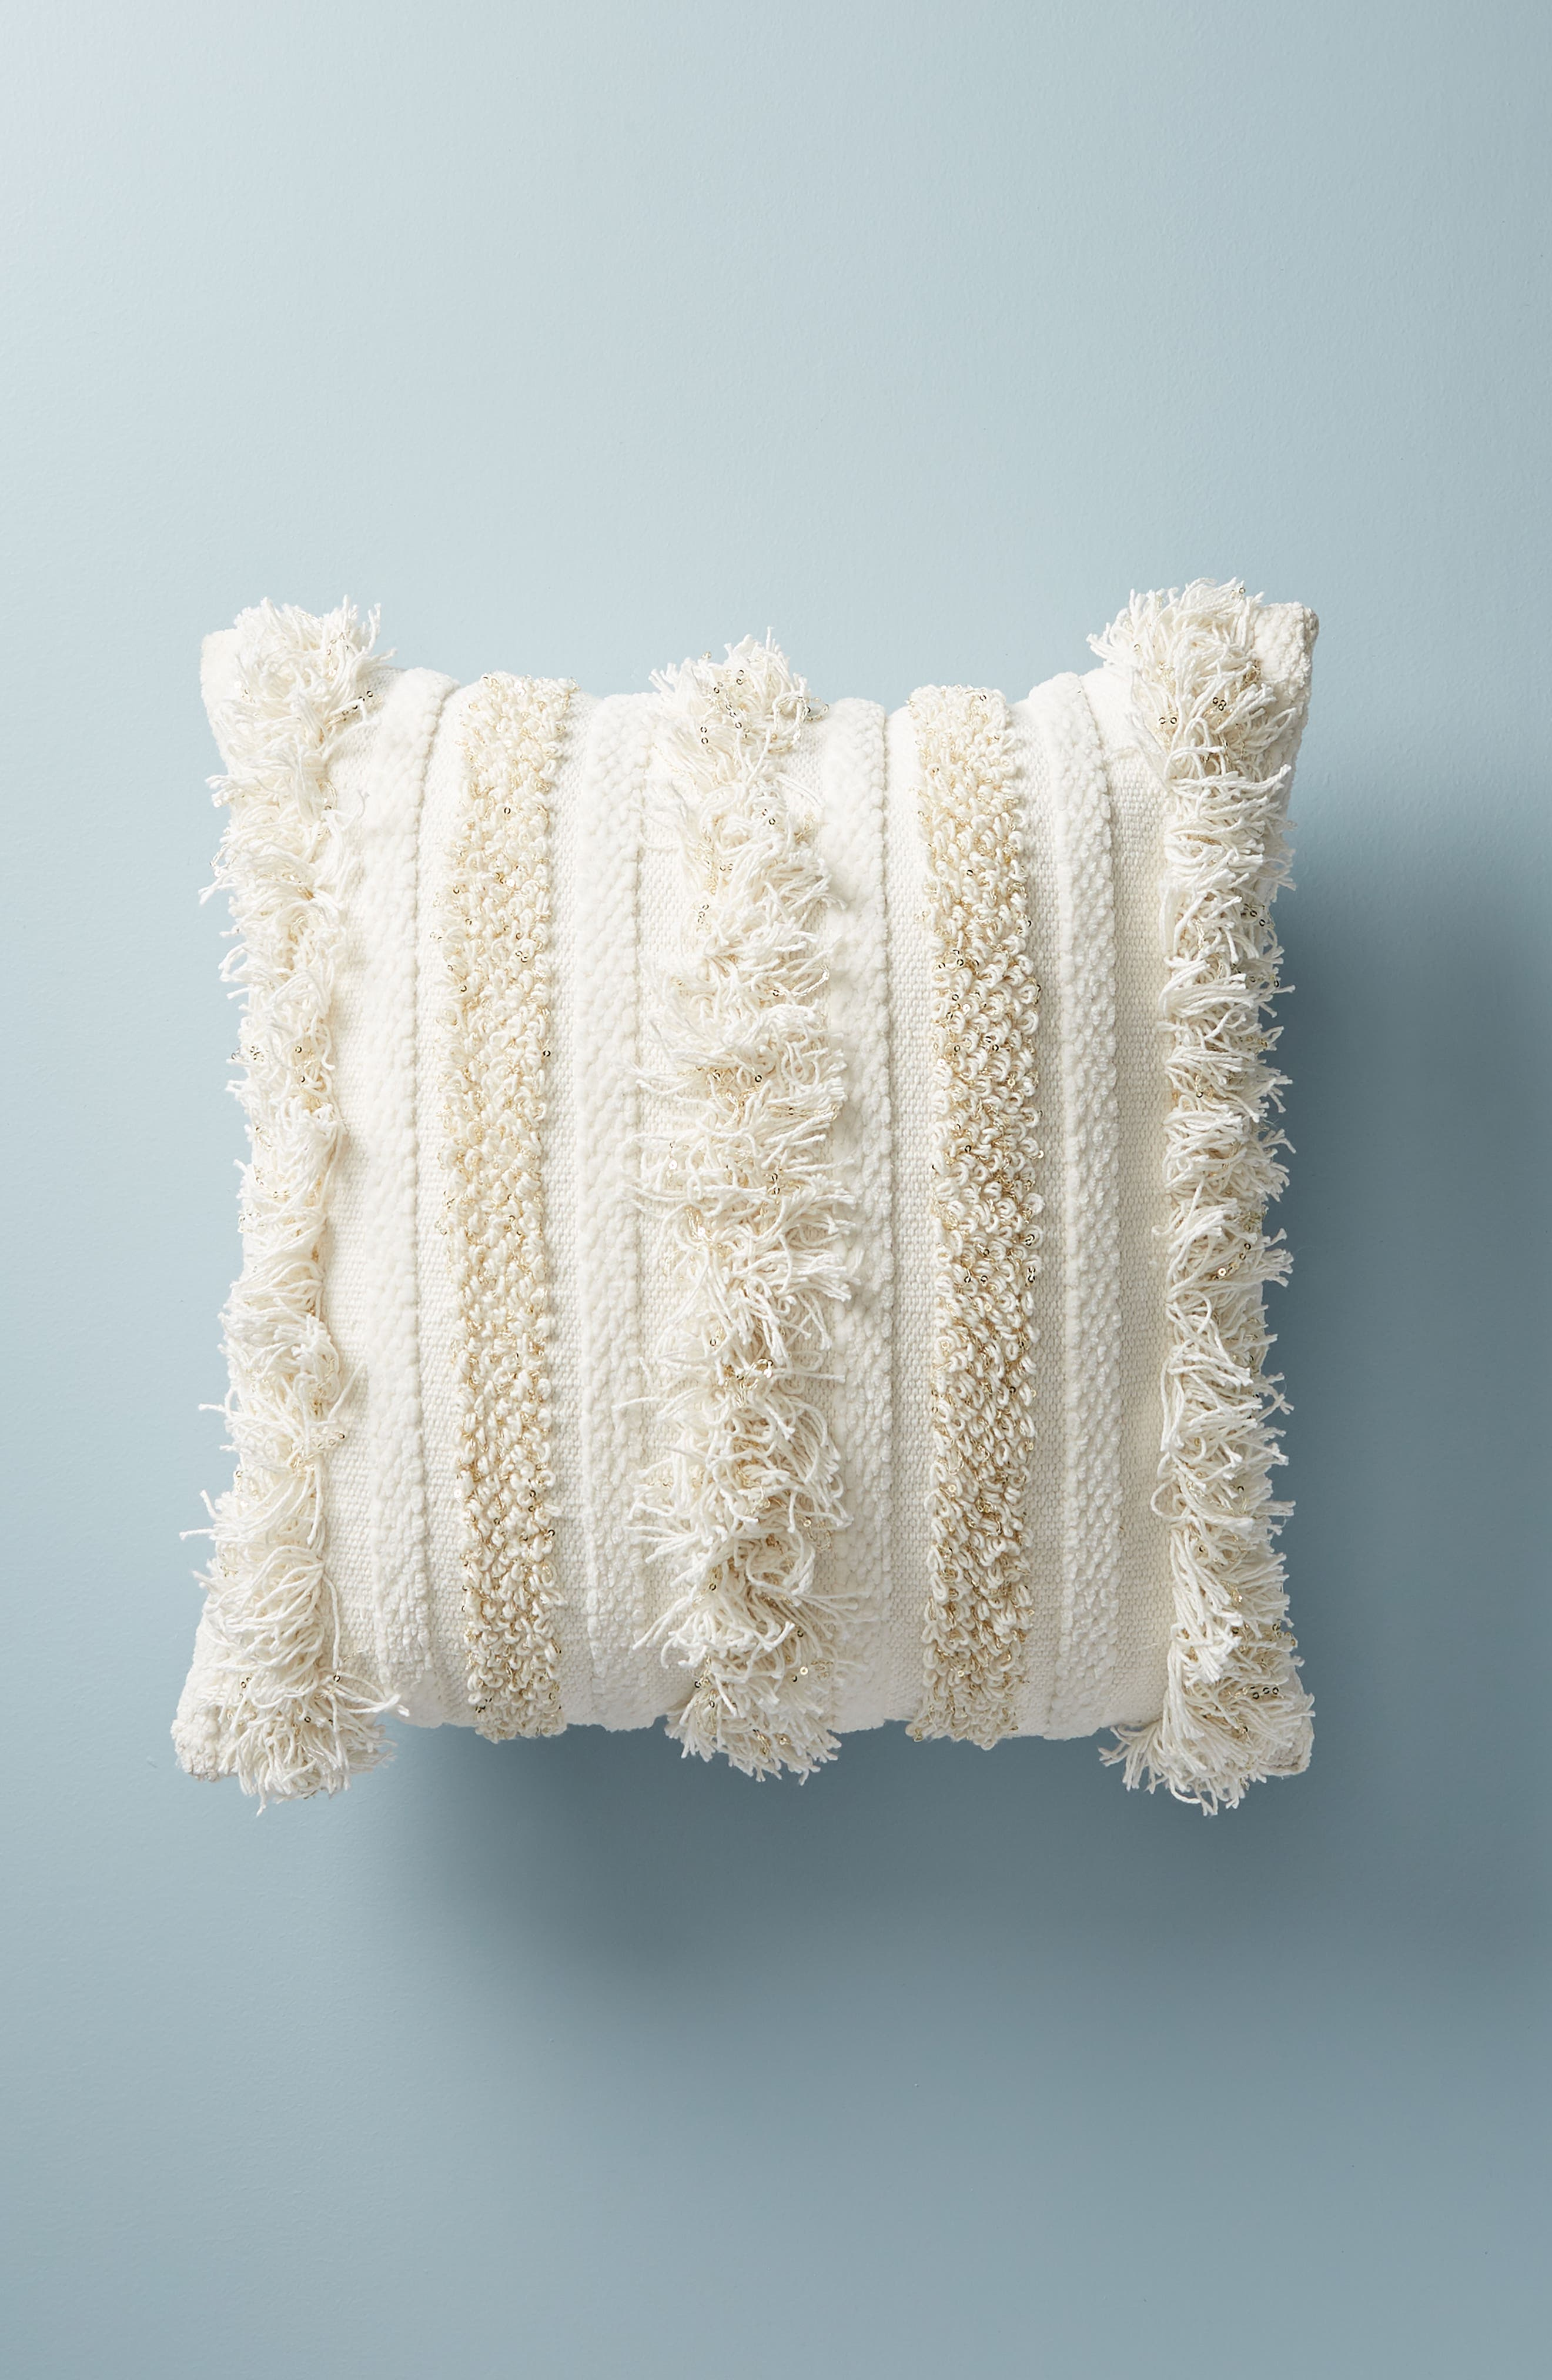 Alternate Image 1 Selected - Anthropologie Indira Accent Pillow